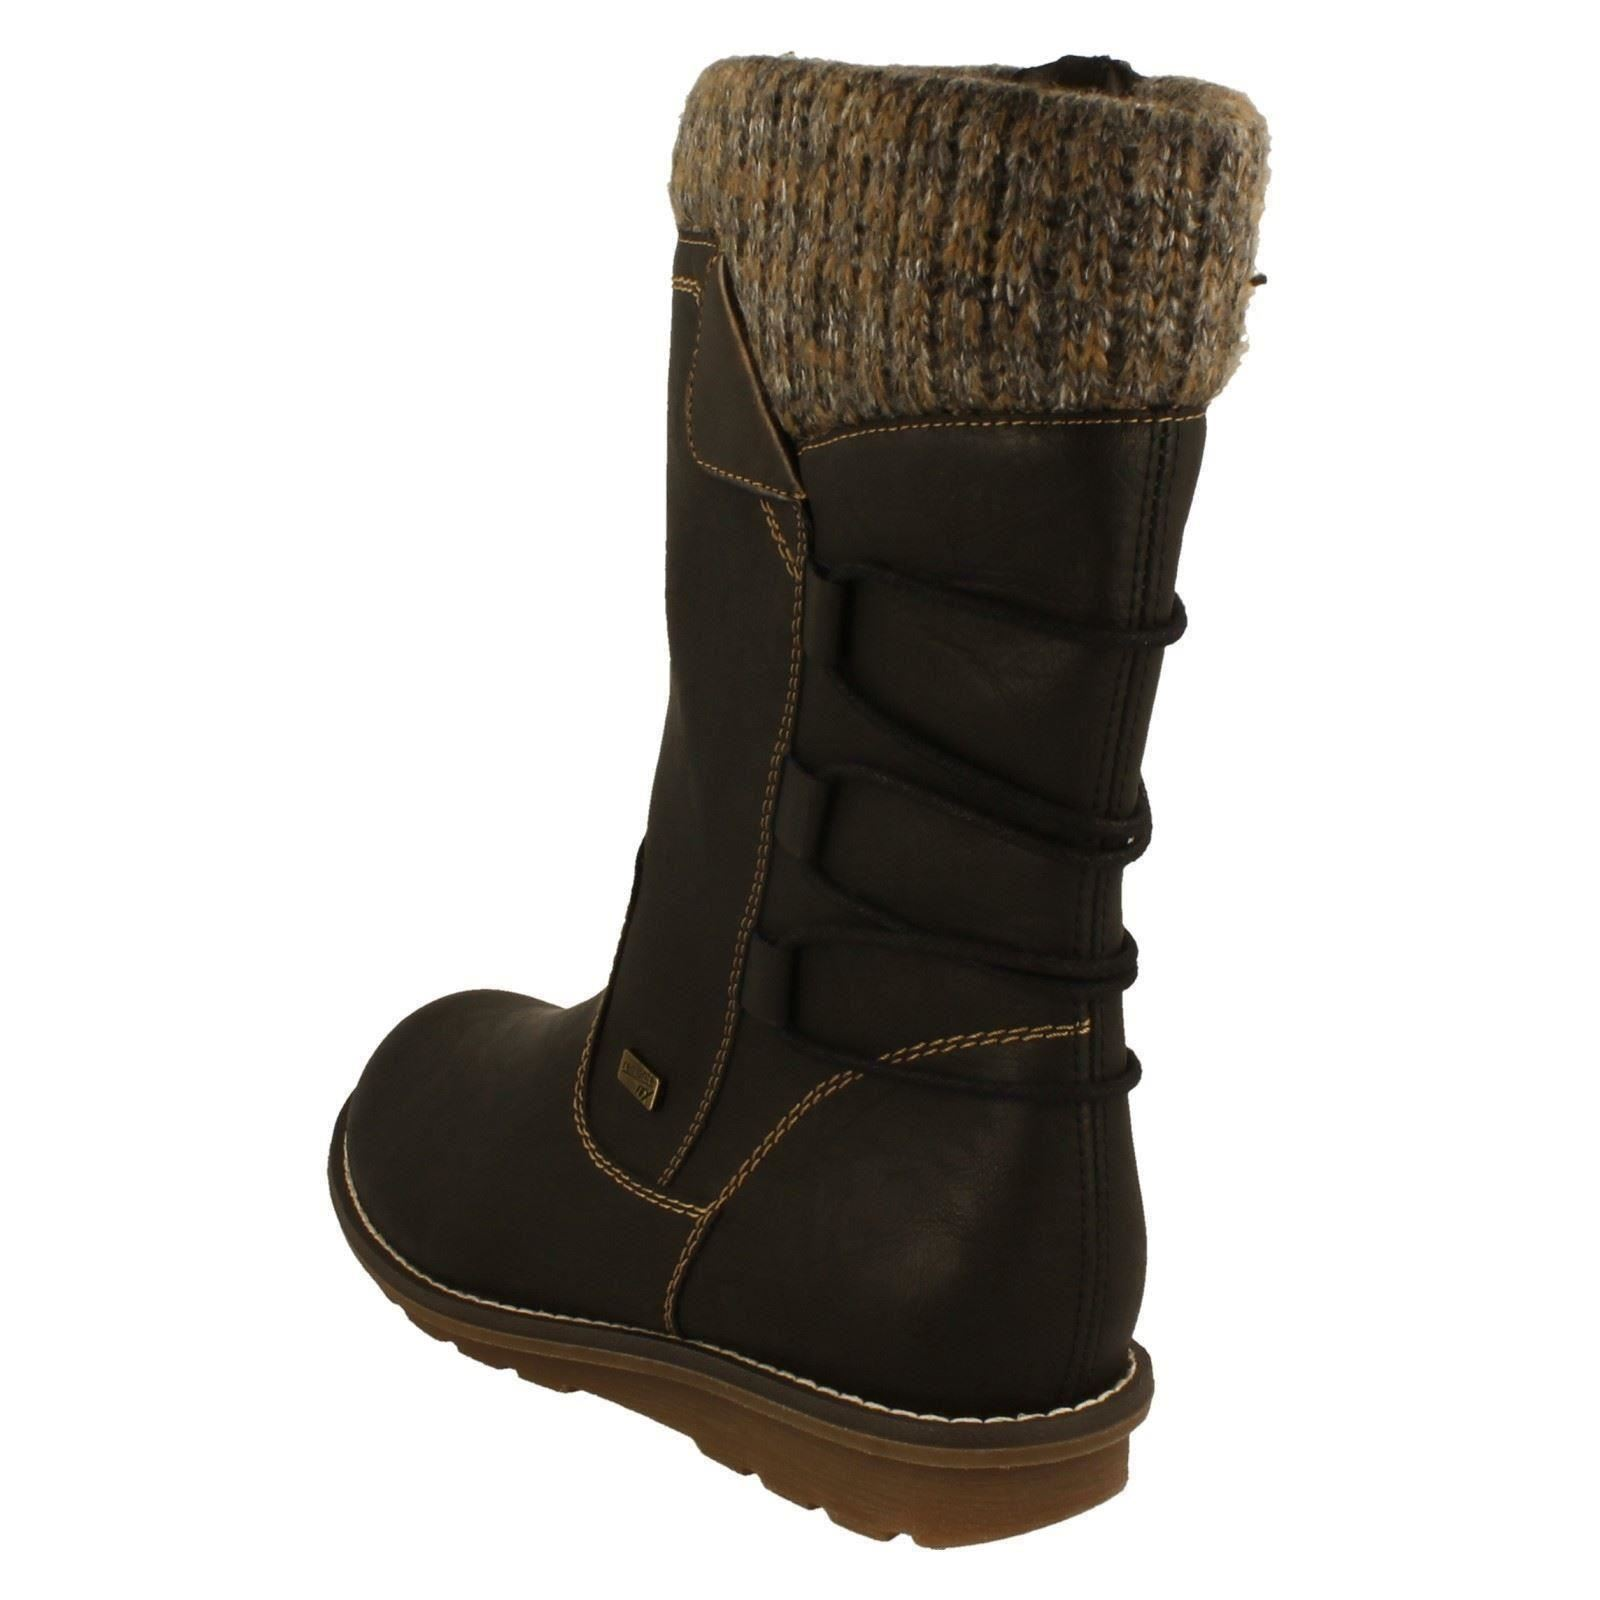 Ladies Remonte Mid Mid Remonte Calf Boots Style R1094-W 7c6ad1